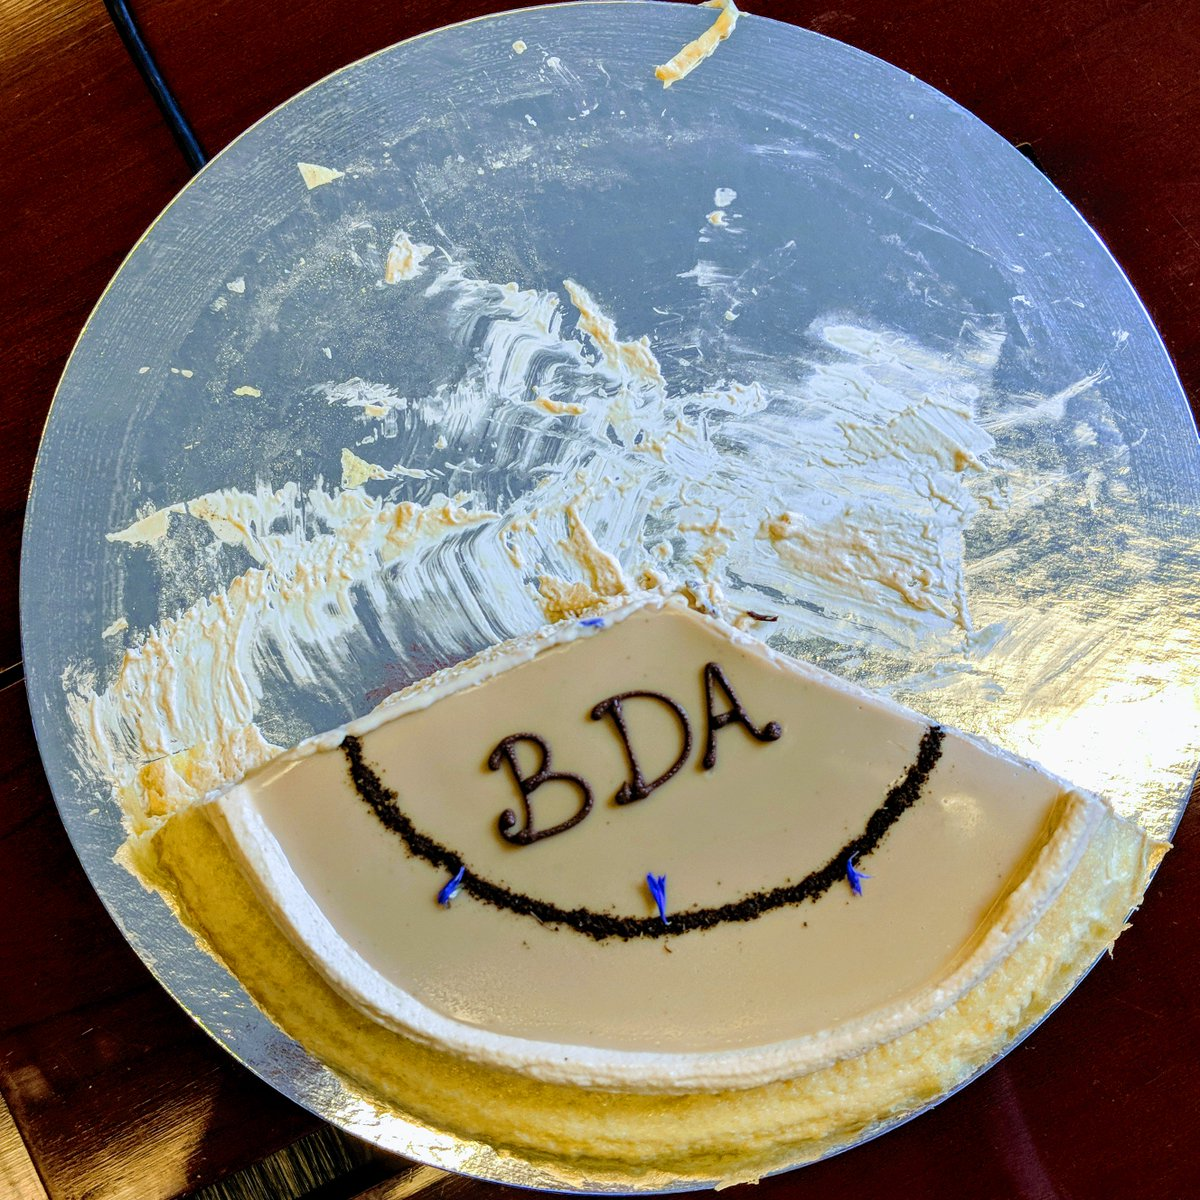 Bda Partners On Twitter Whats A Birthday Without Cake